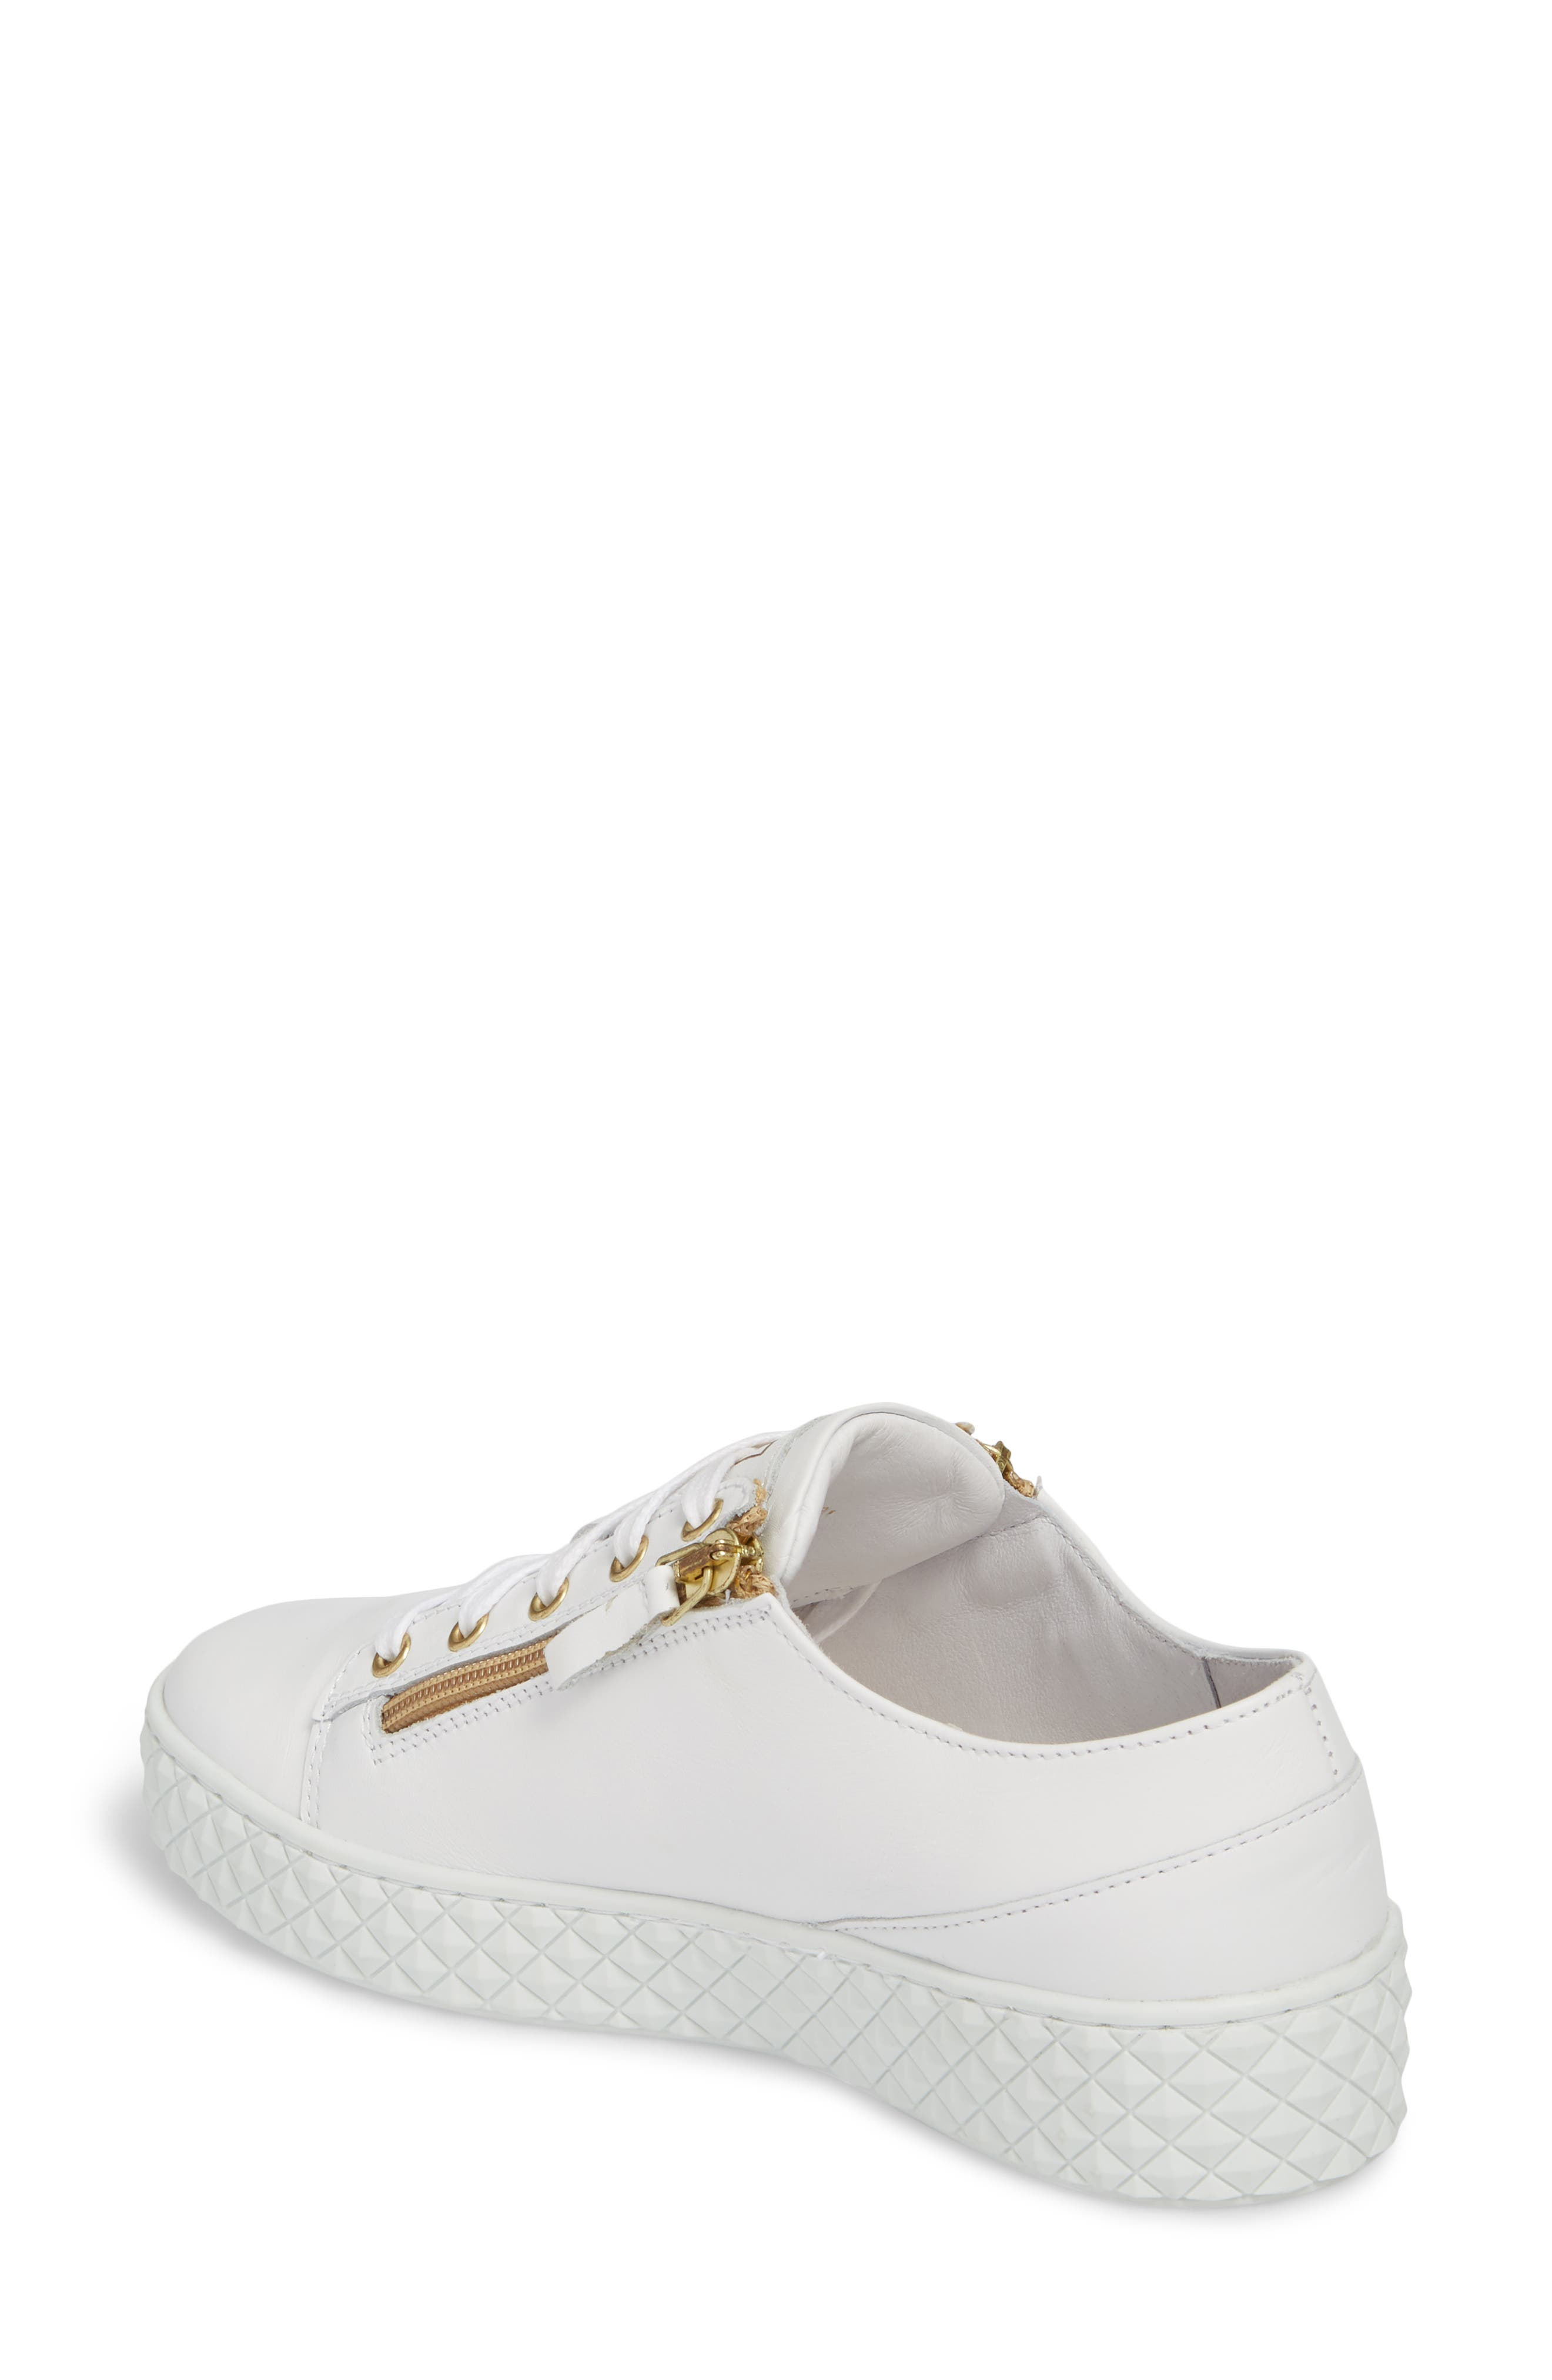 Mira Side Zip Low Top Sneaker,                             Alternate thumbnail 2, color,                             Optic White/ Gold Leather